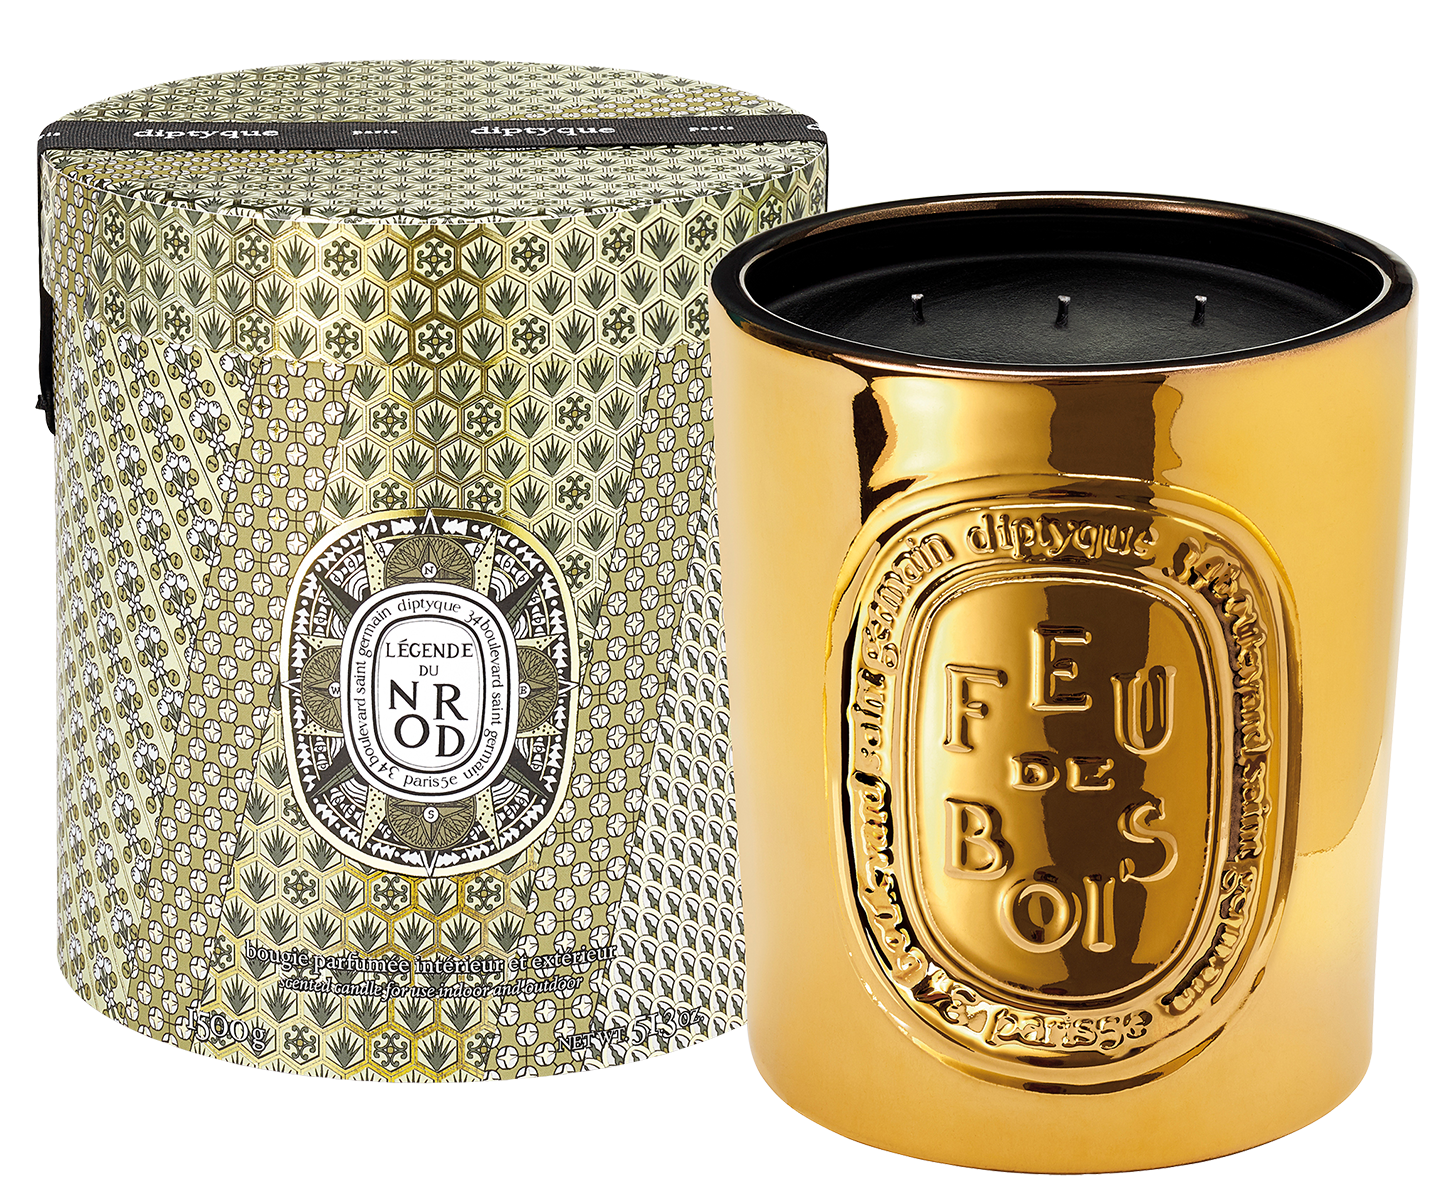 Indoor and outdoor Feu de Bois candle - limited edition